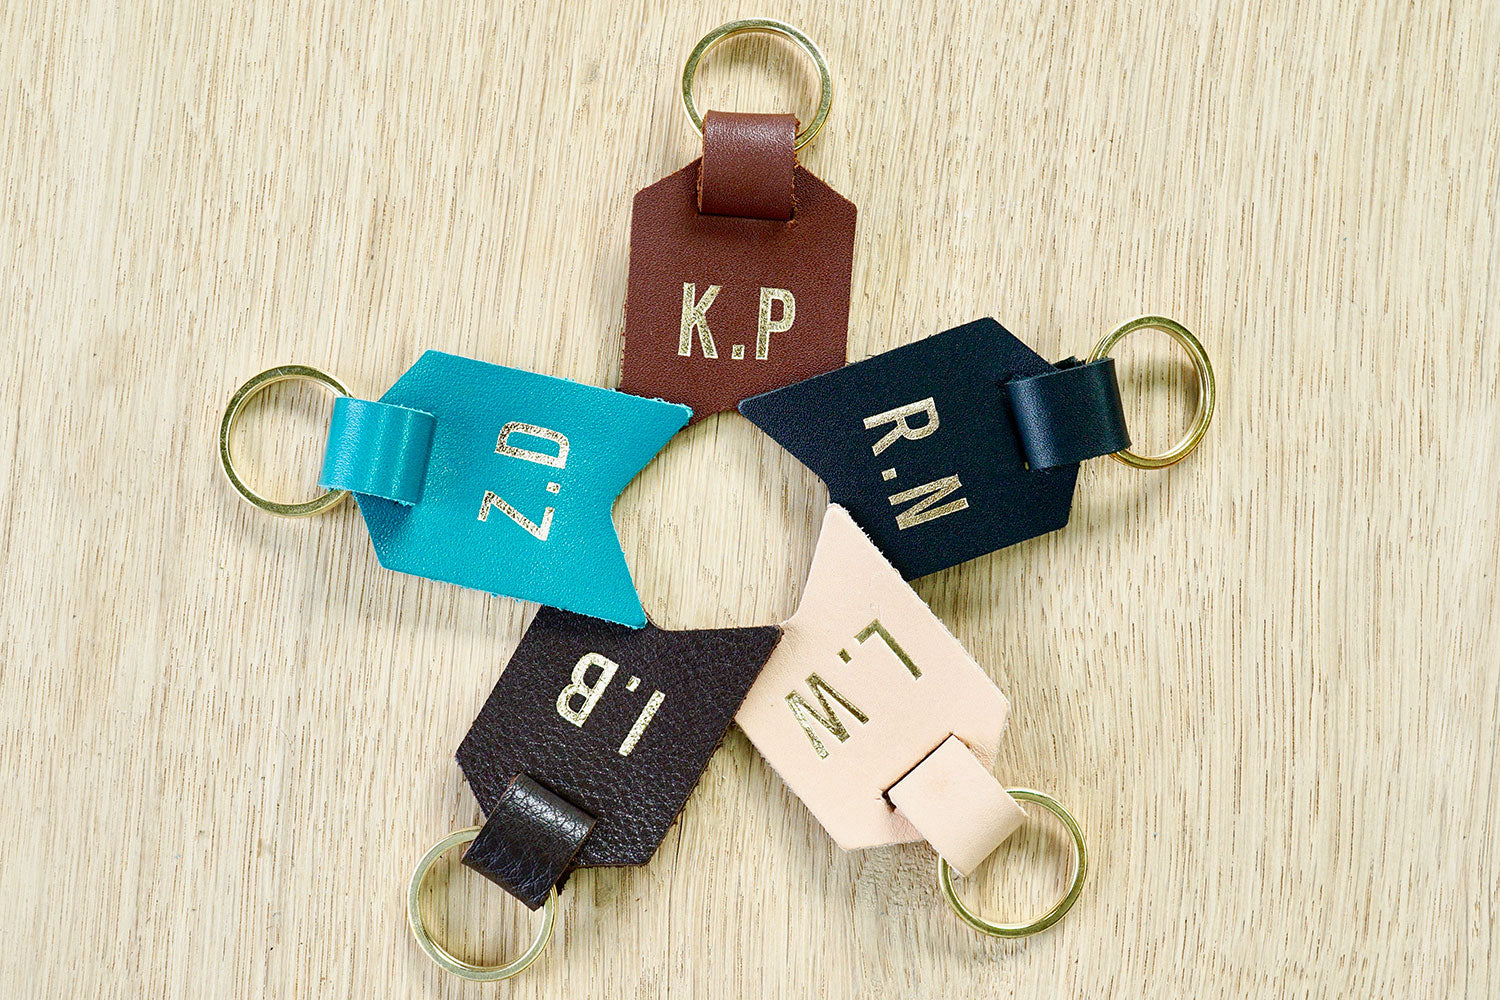 Peronalised keyrings from Bookshell bindery available in black leather, turquoise blue leather, dark brown leather, light brown leather, Natural (pale pink)